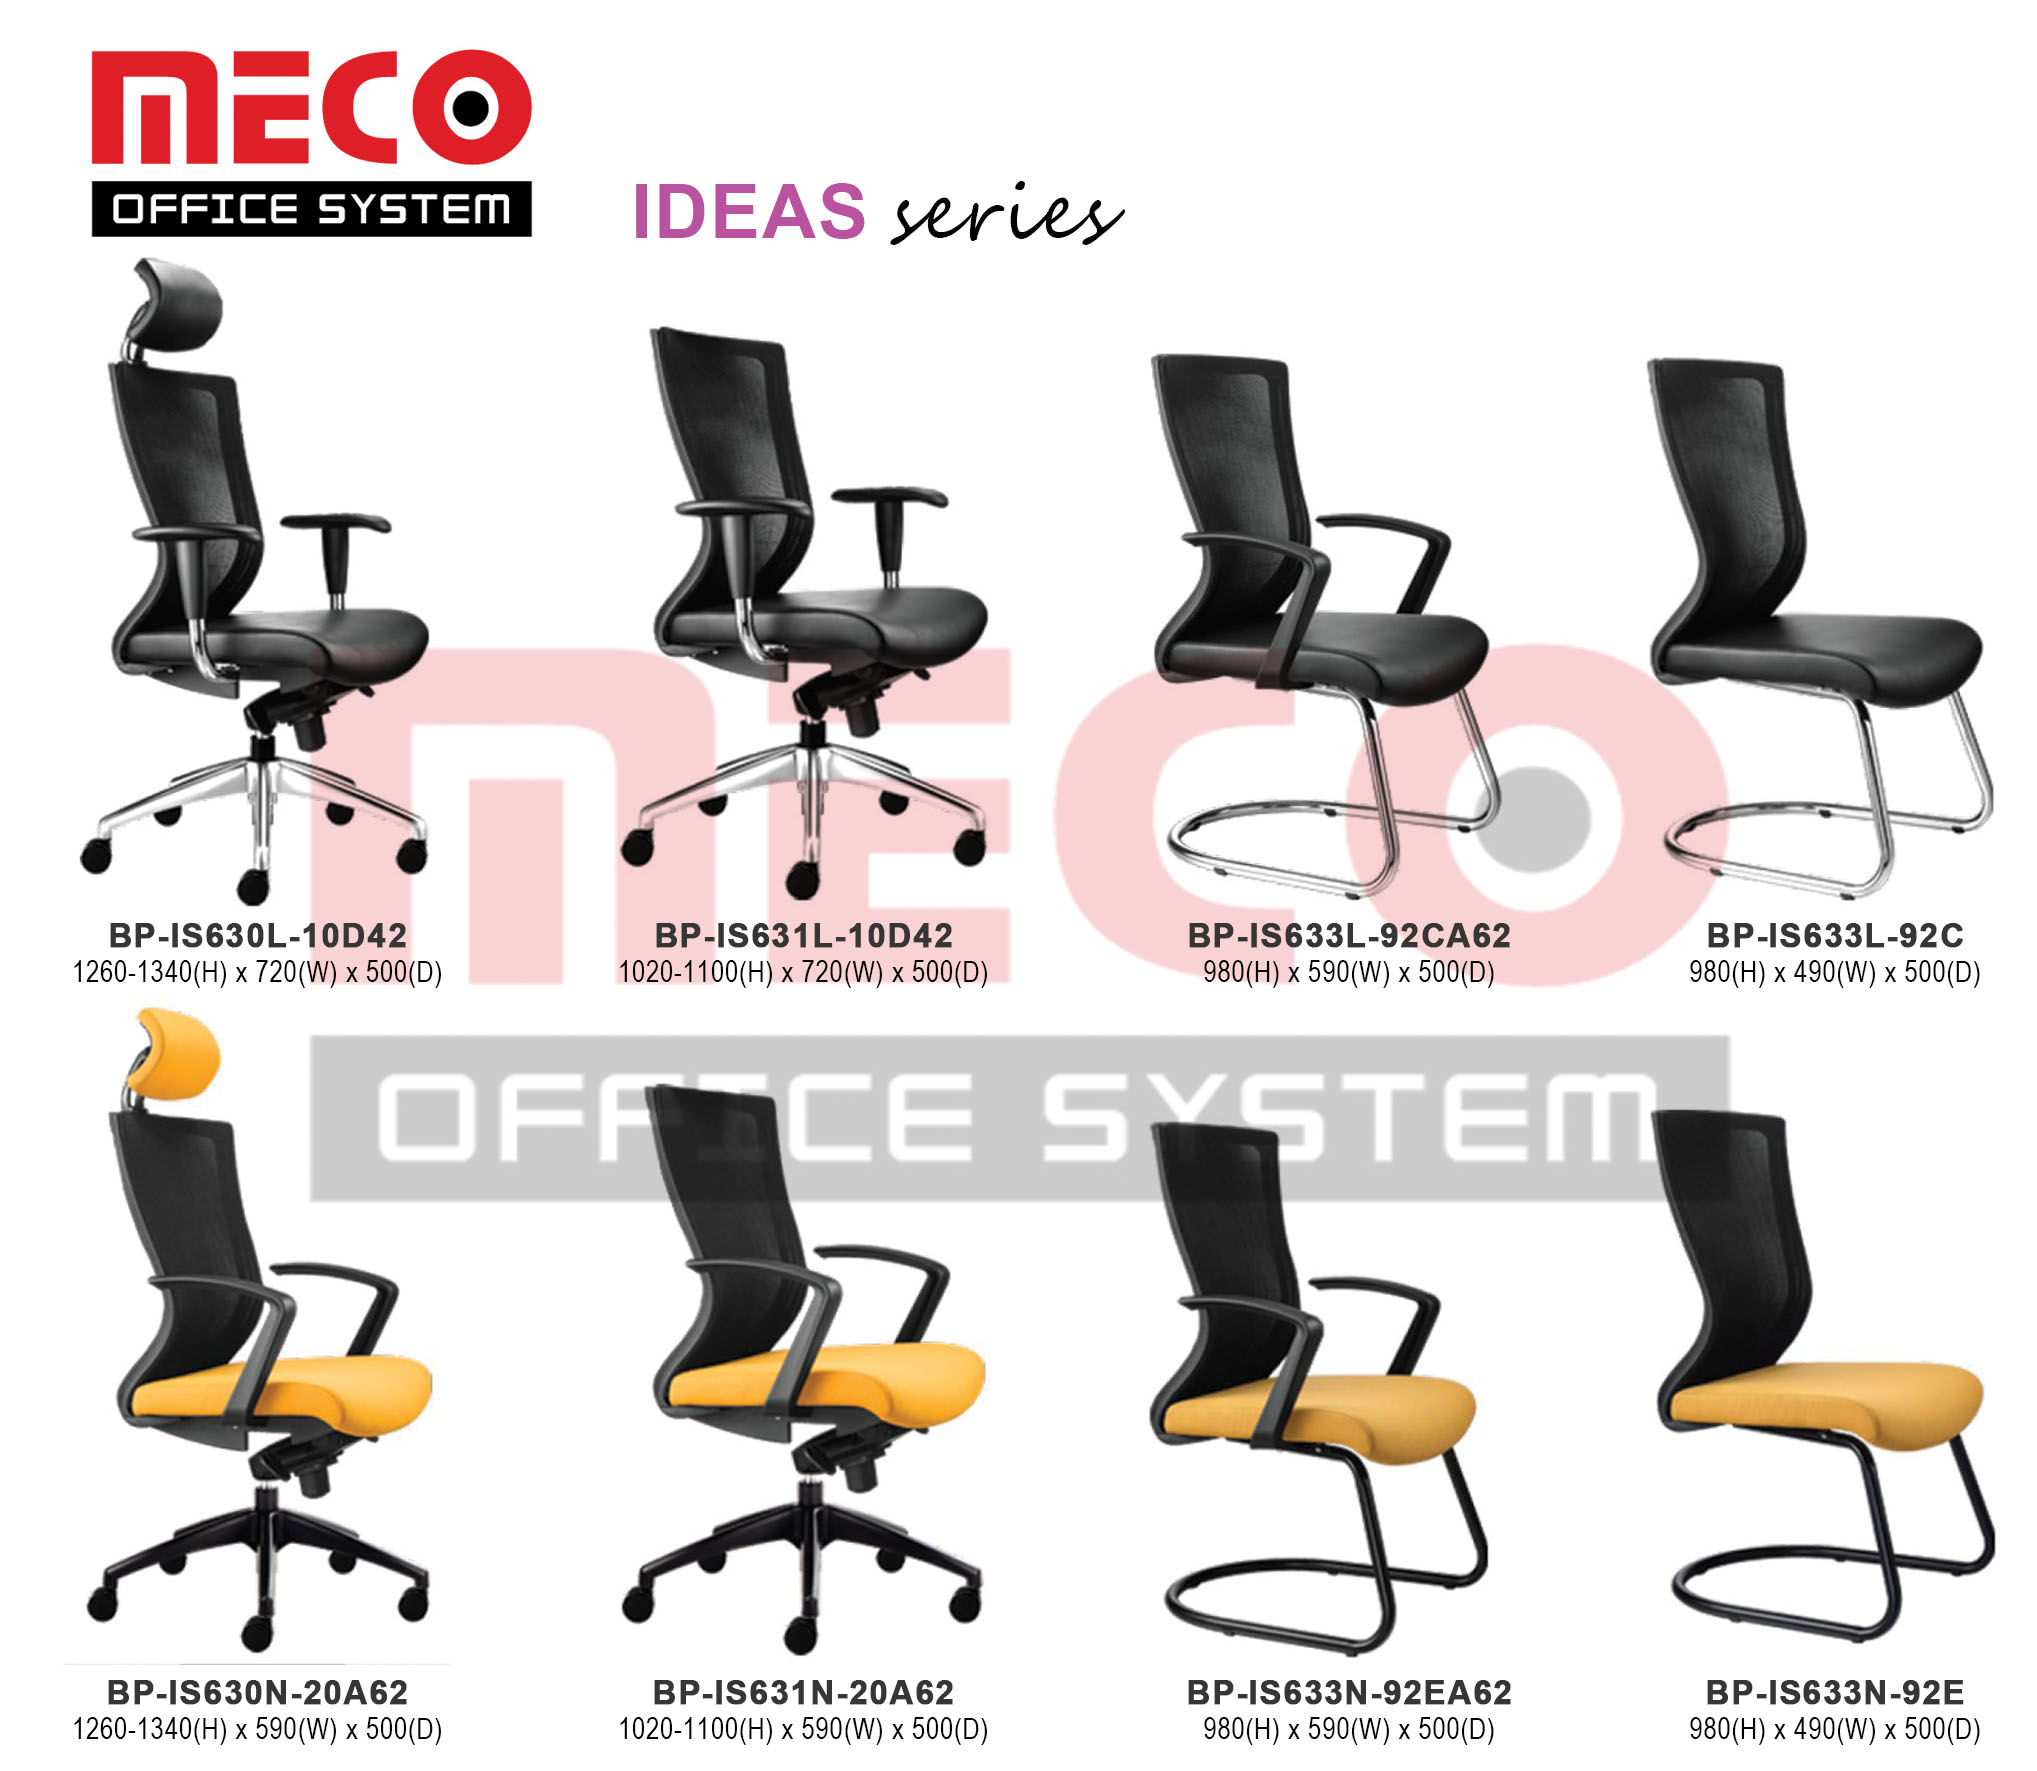 MECO OFFICE SYSTEM Malaysia office furniture supplier manufactured.